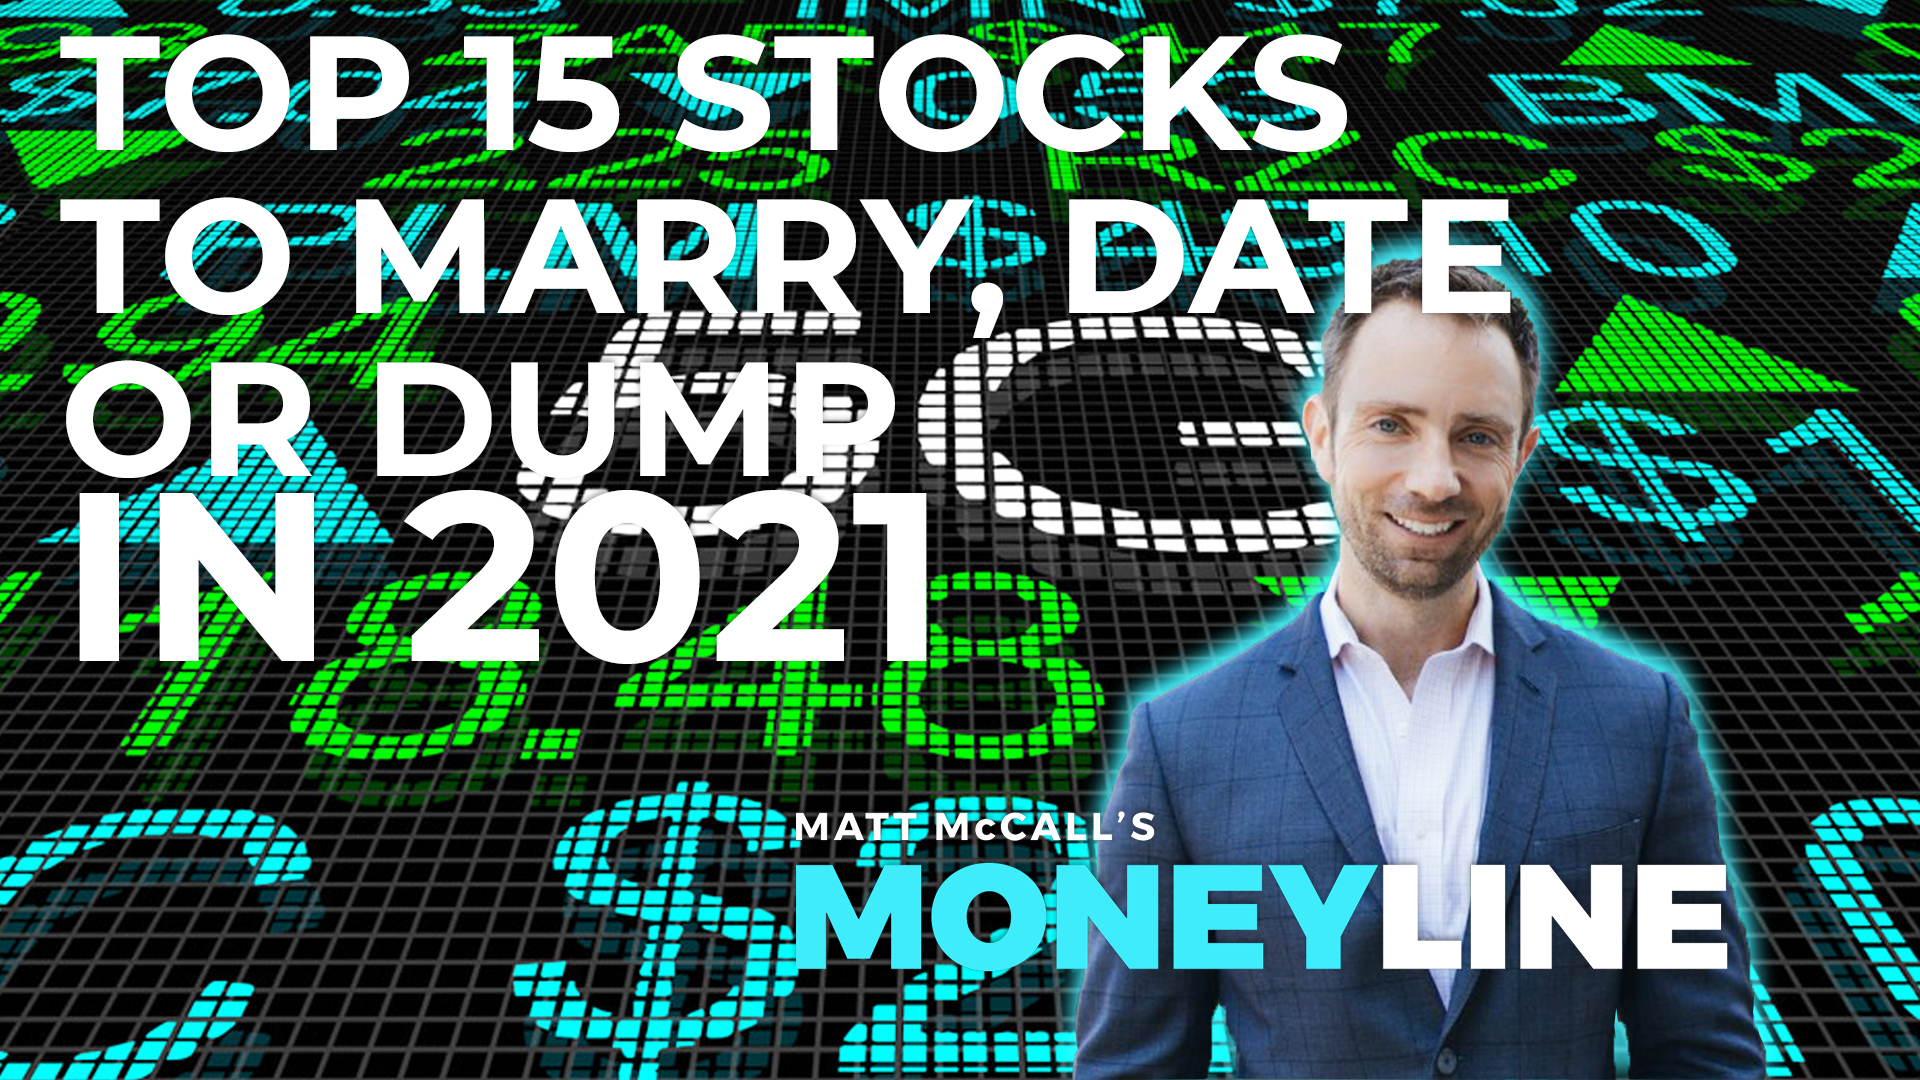 Matt McCall's Moneyline: Top 15 Stocks to Marry, Date, or Dump in 2021